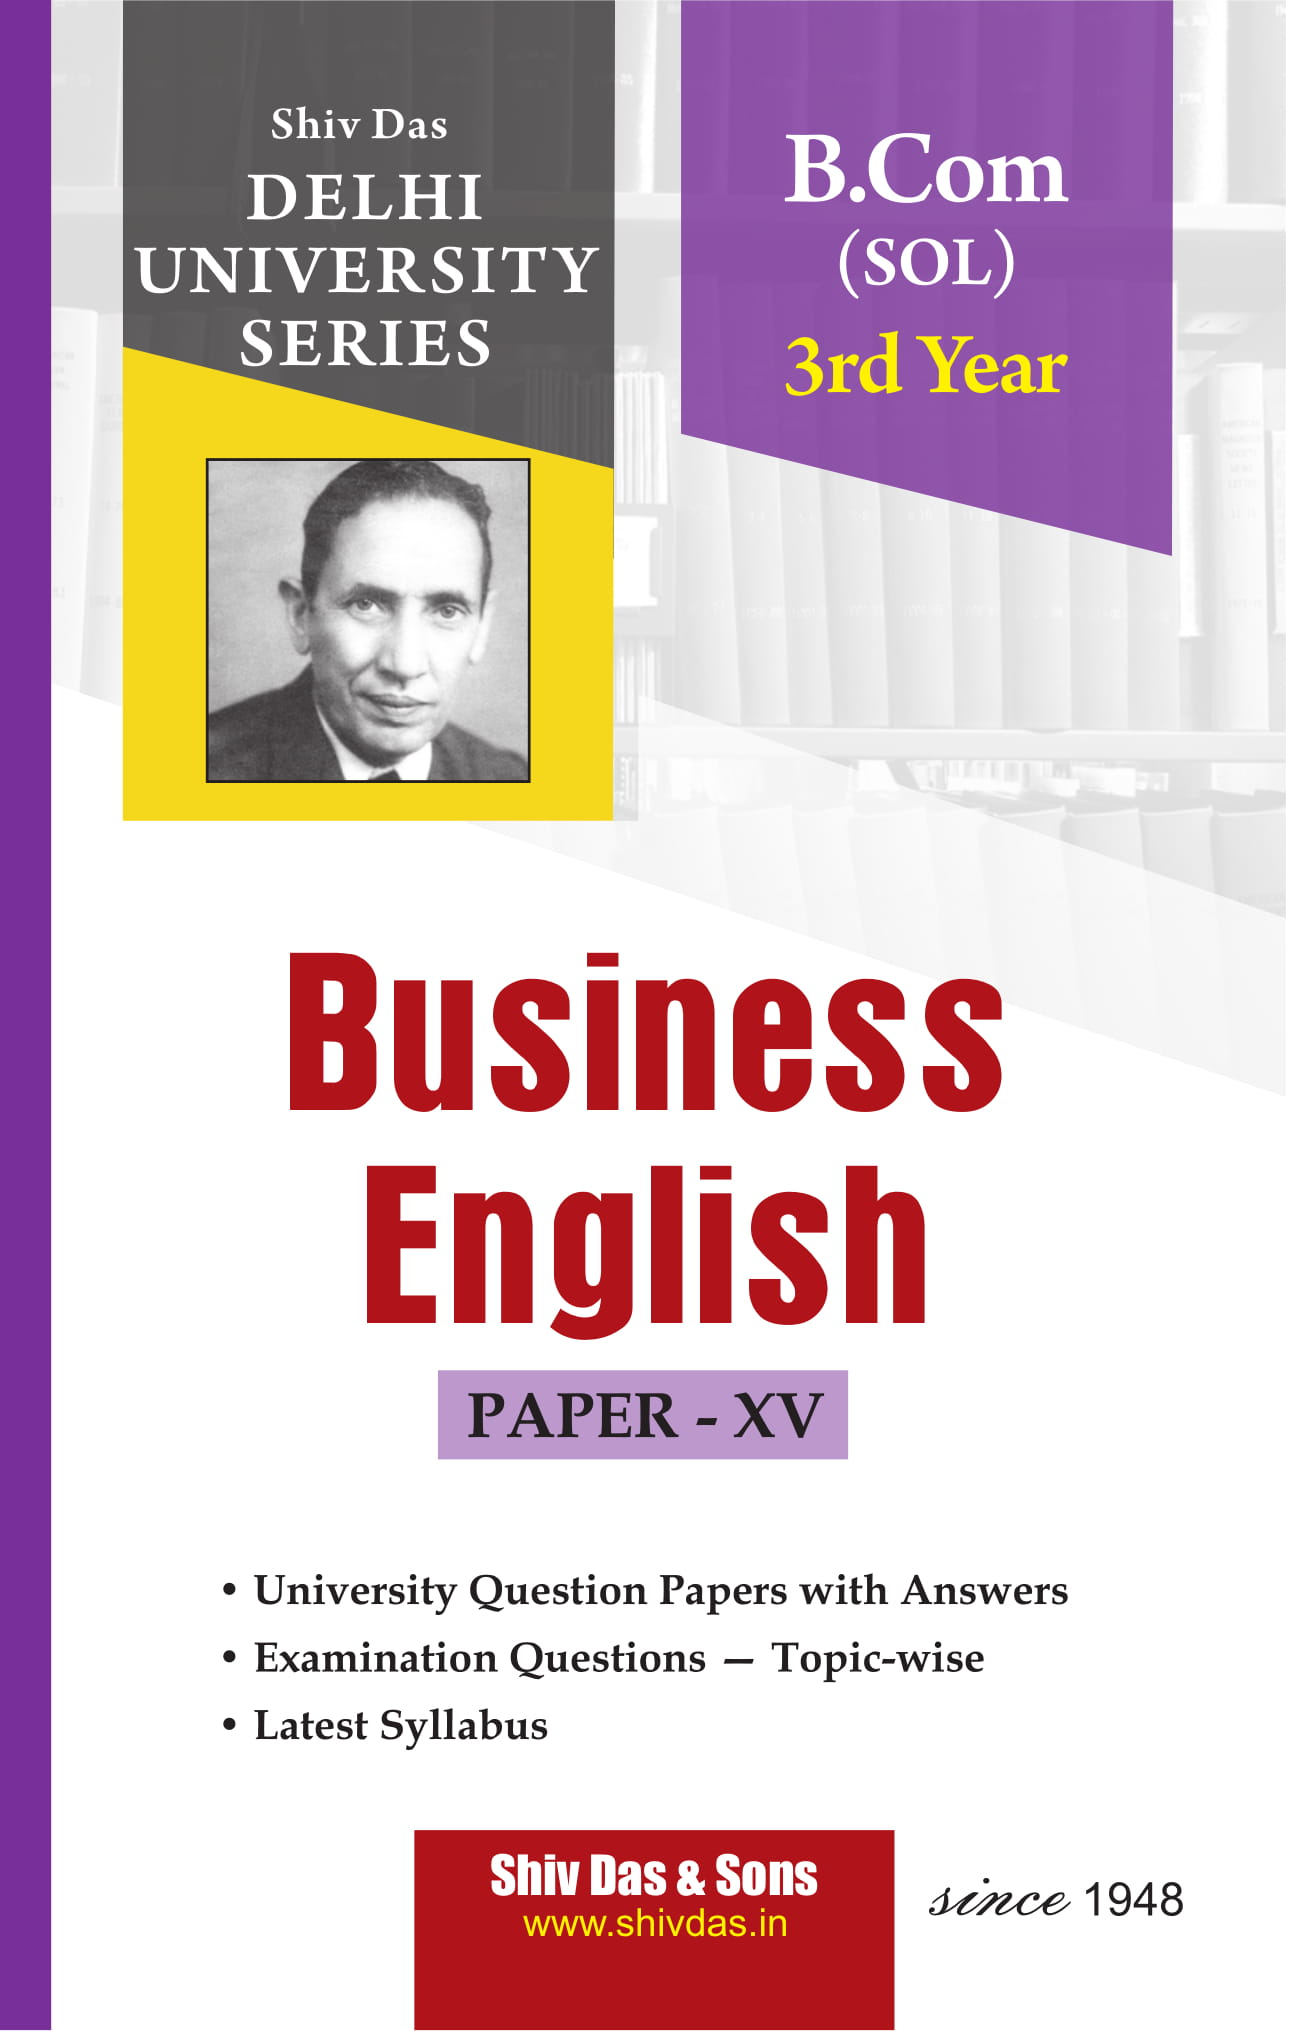 Business English for B.Com 3rd Year SOL/External